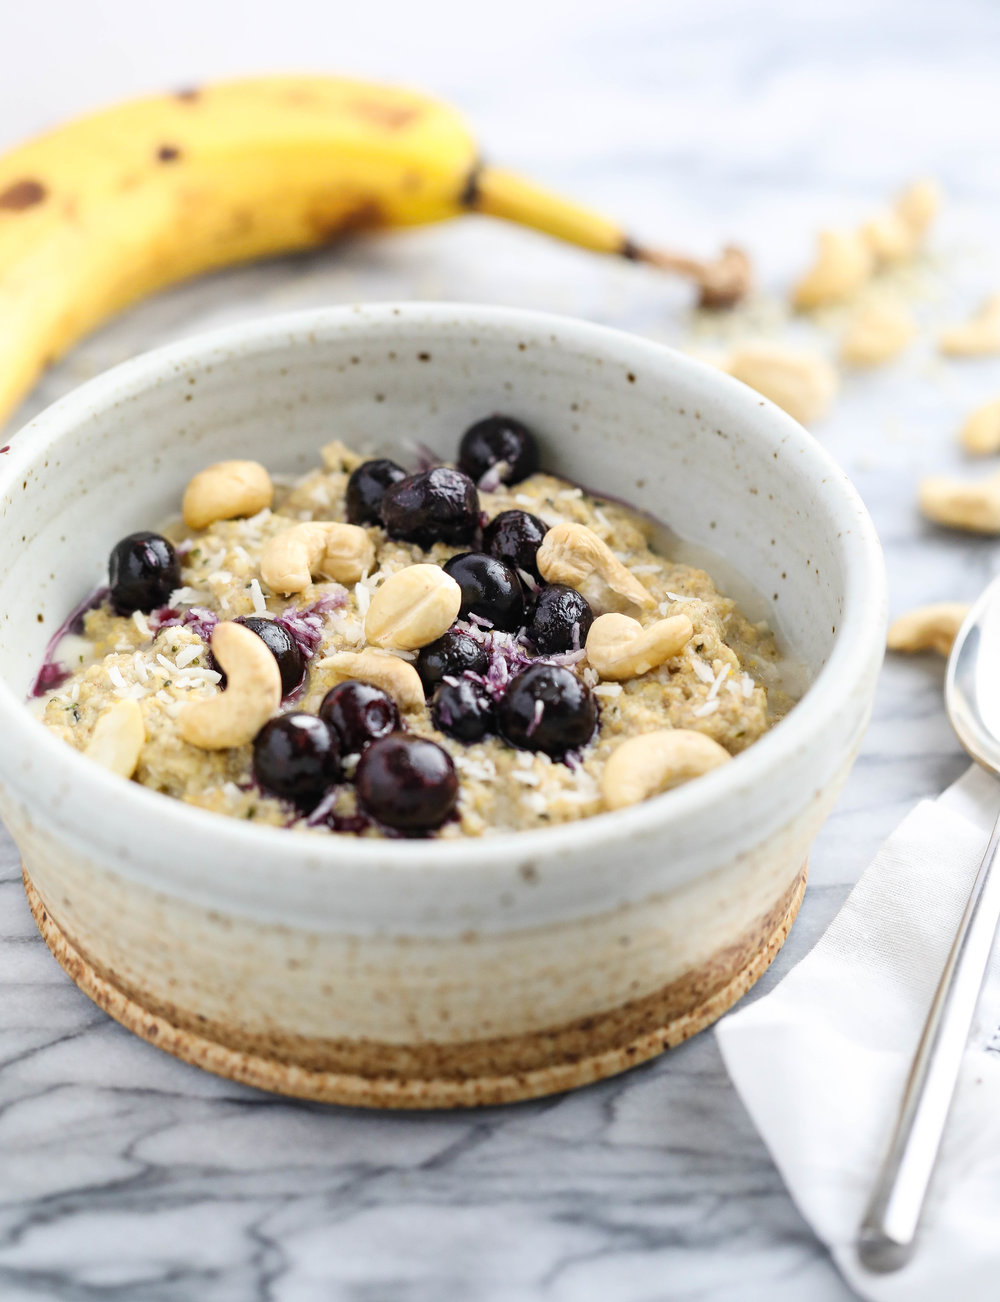 Basic Banana Oatless Oatmeal